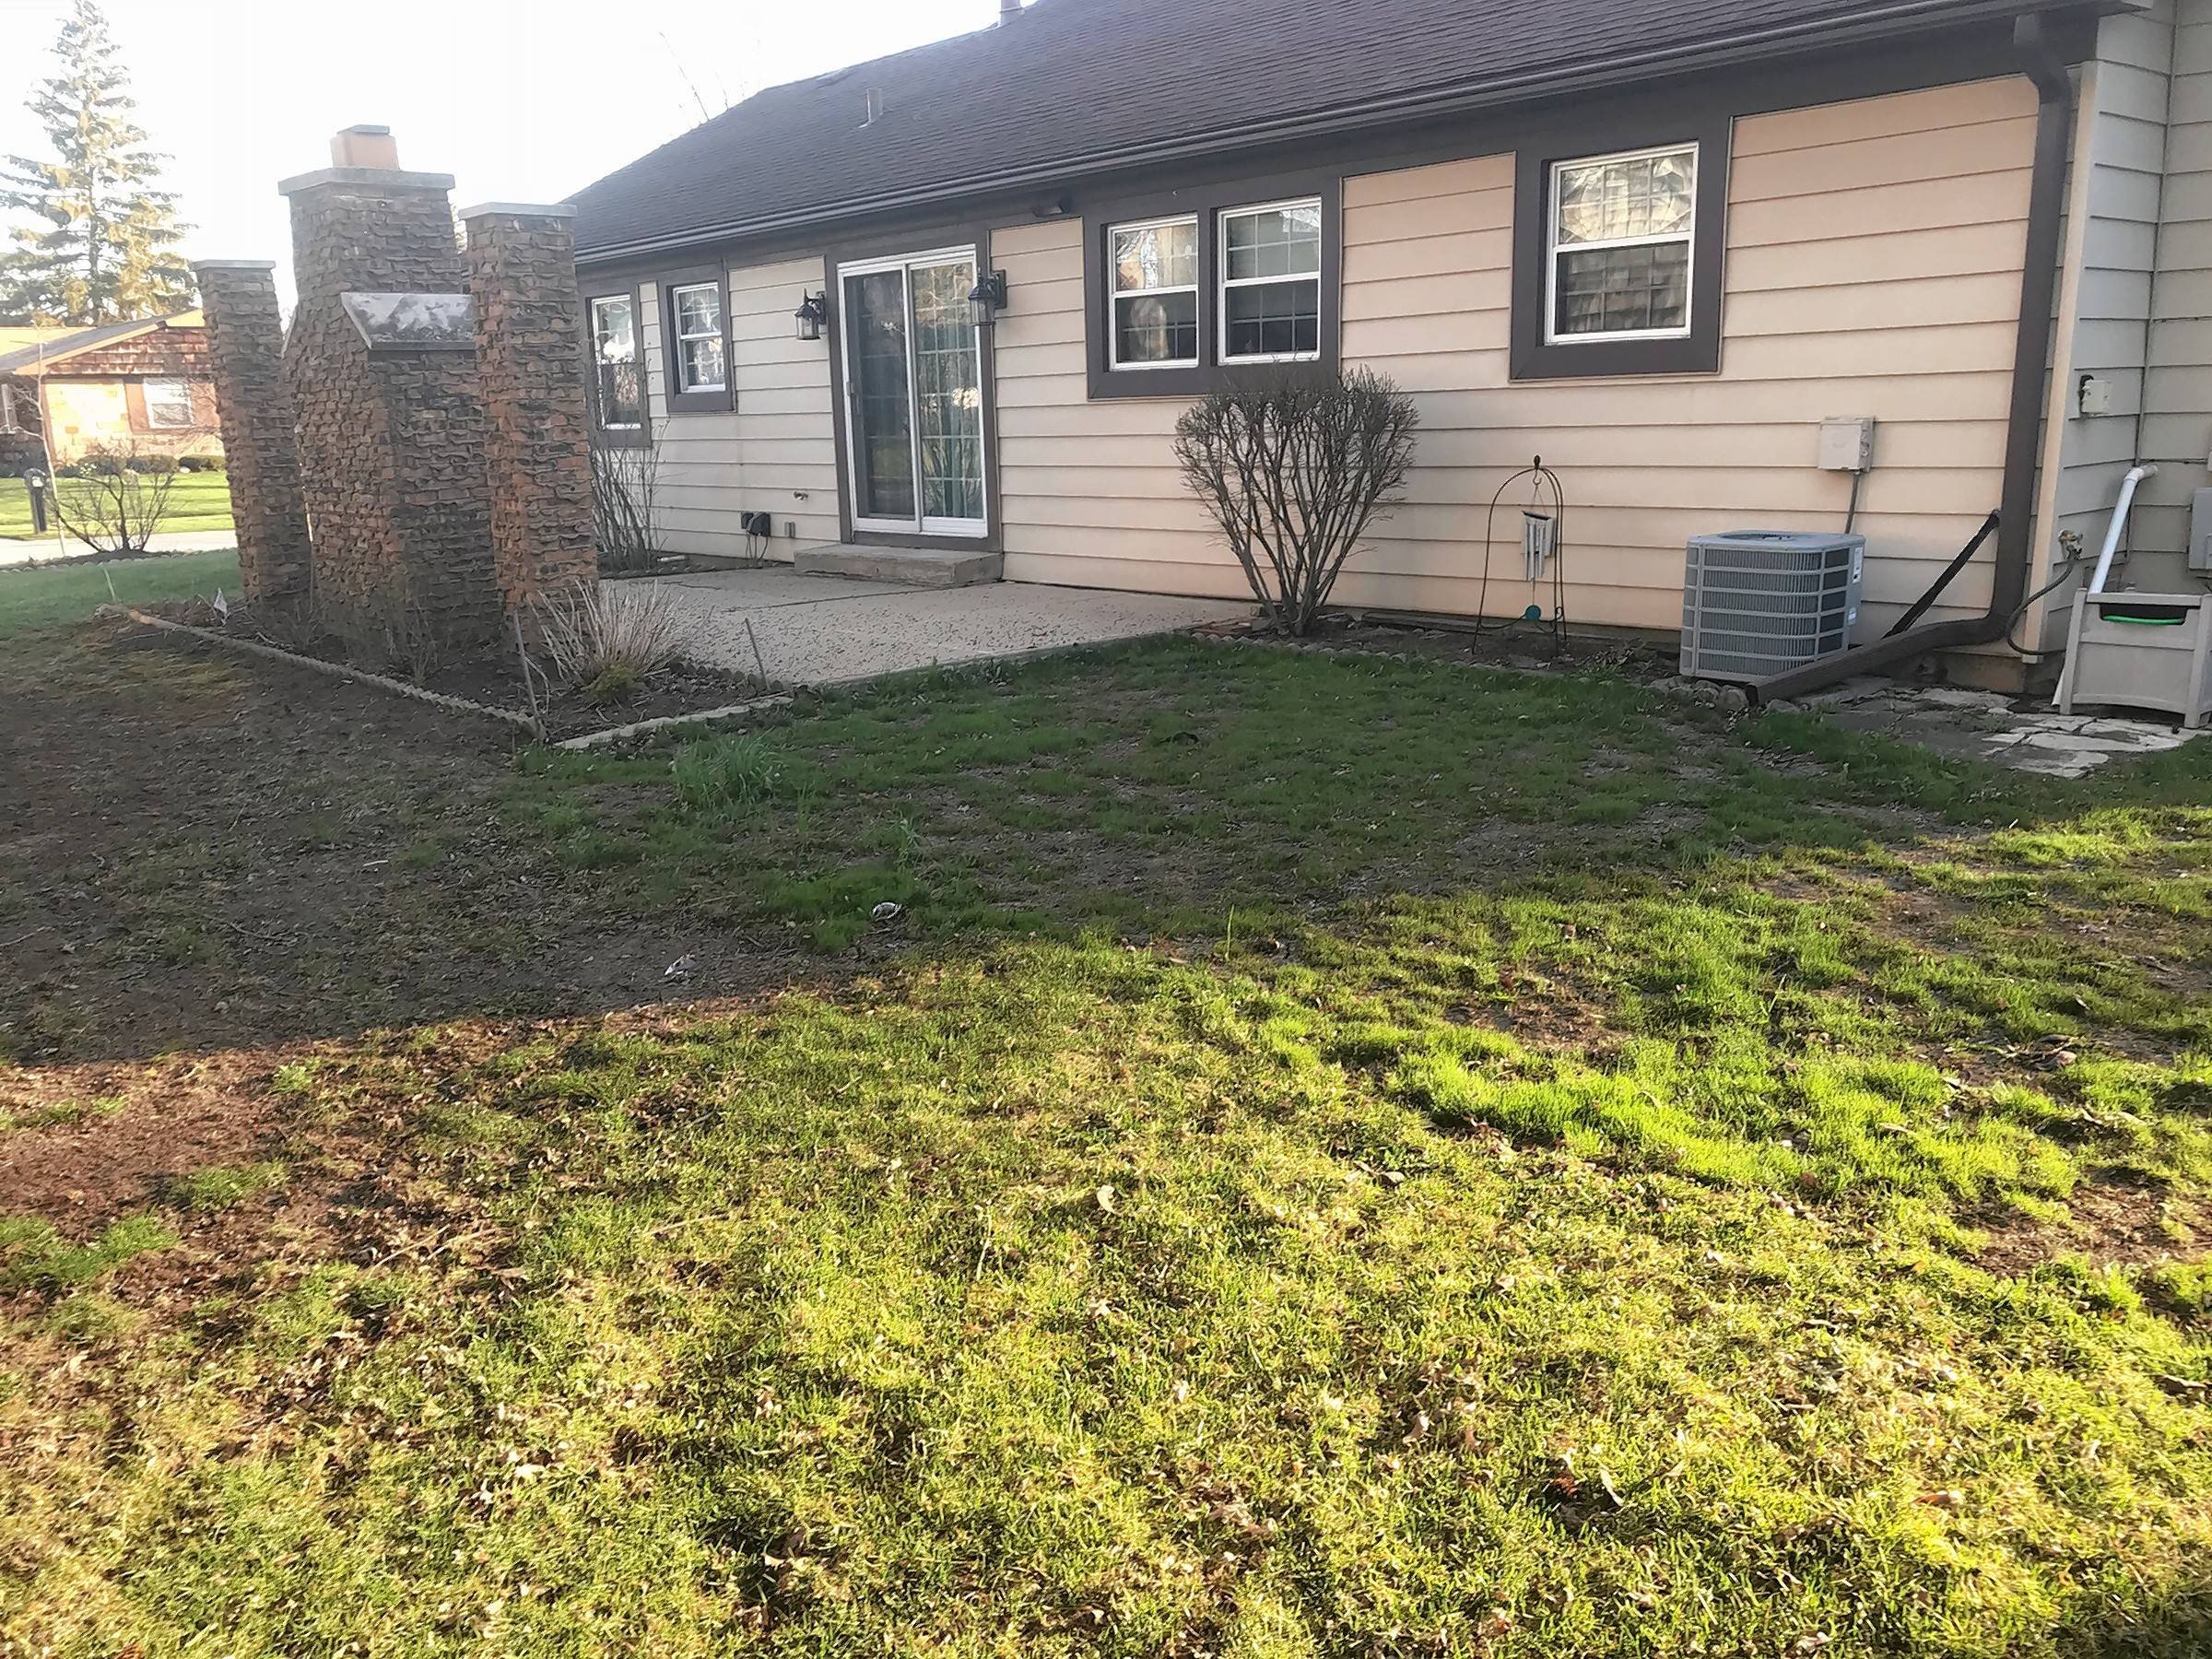 Roseann Portiera of Buffalo Grove says her backyard, starting with a broken pizza oven, is the ugliest one on her block.